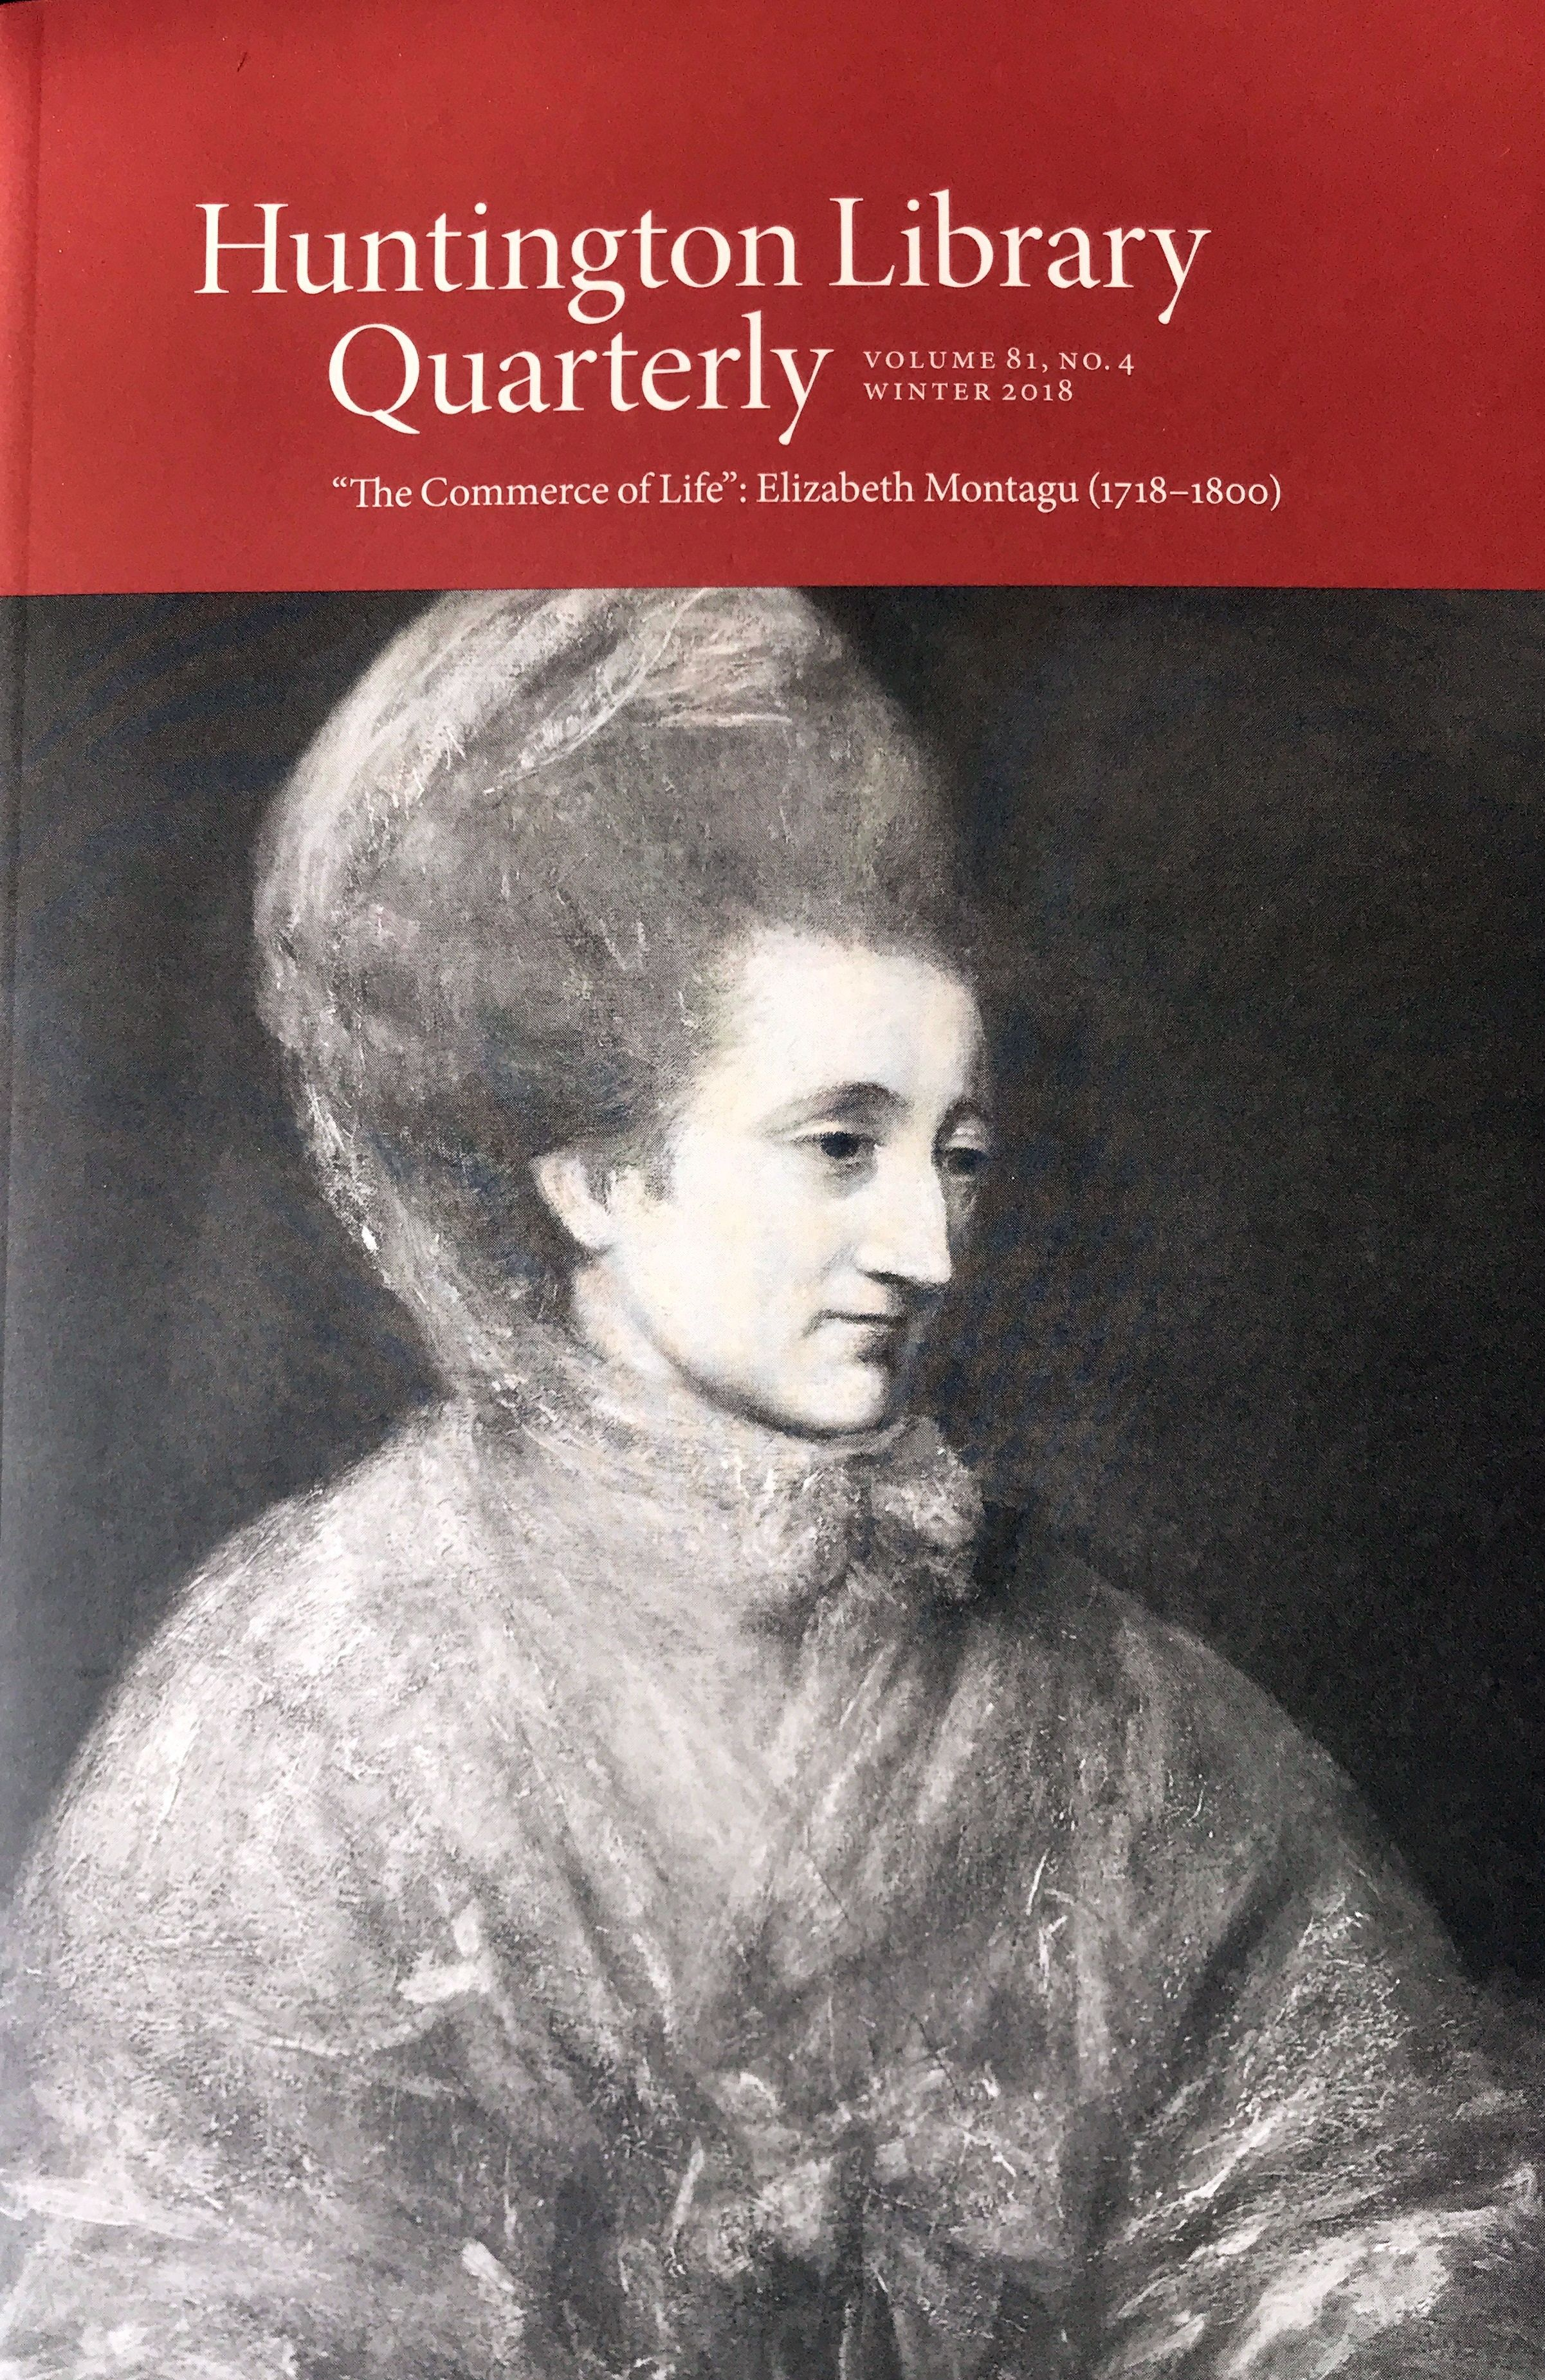 The Commerce of Life: Elizabeth Montagu (1718-1800)